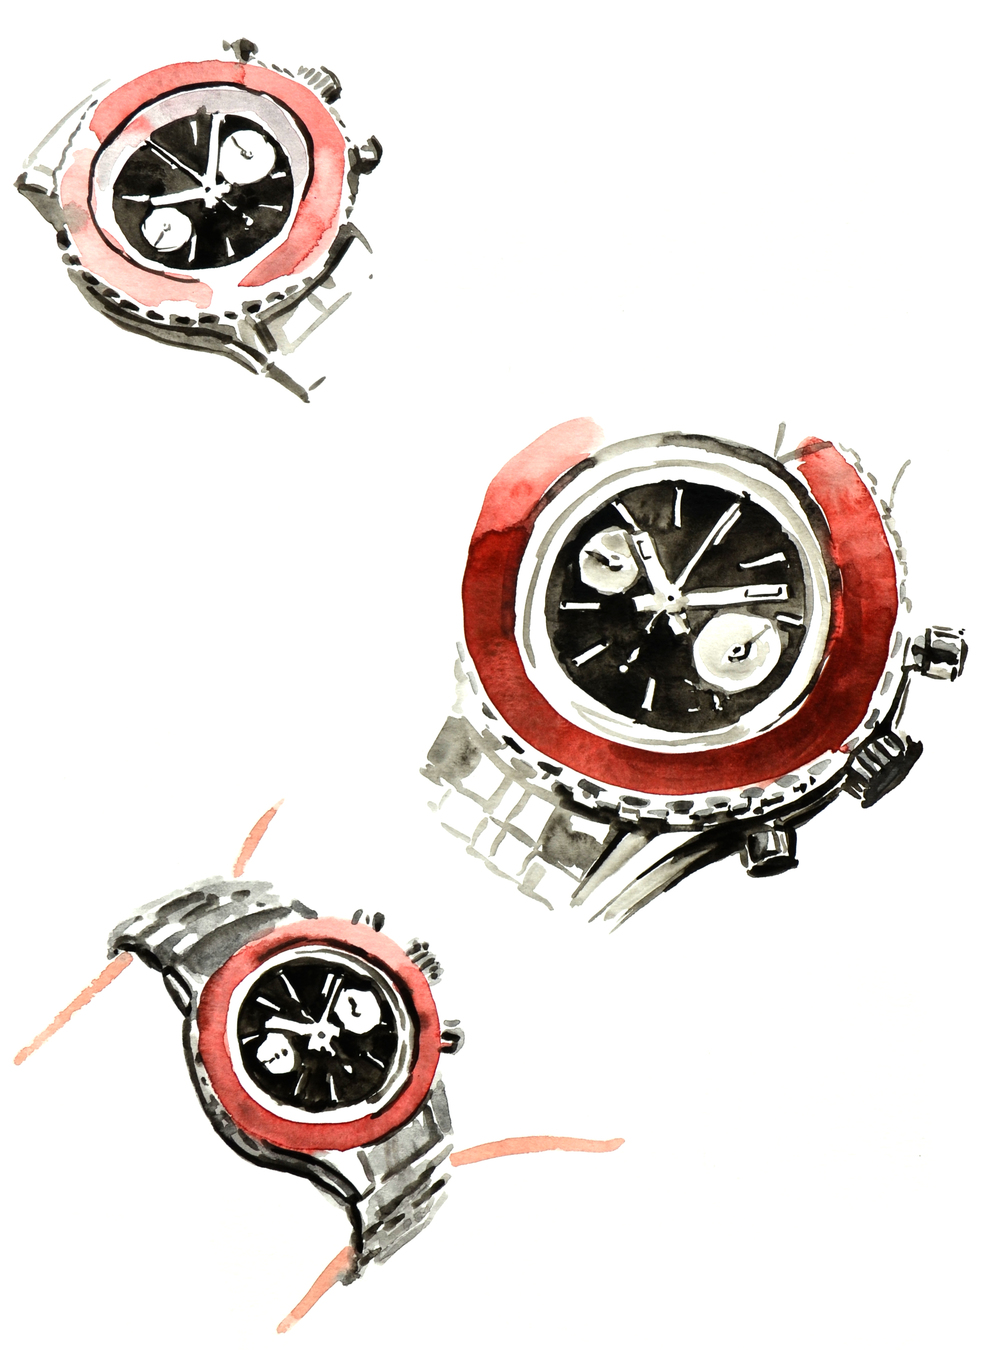 Longines Heritage Diver illustration sketches